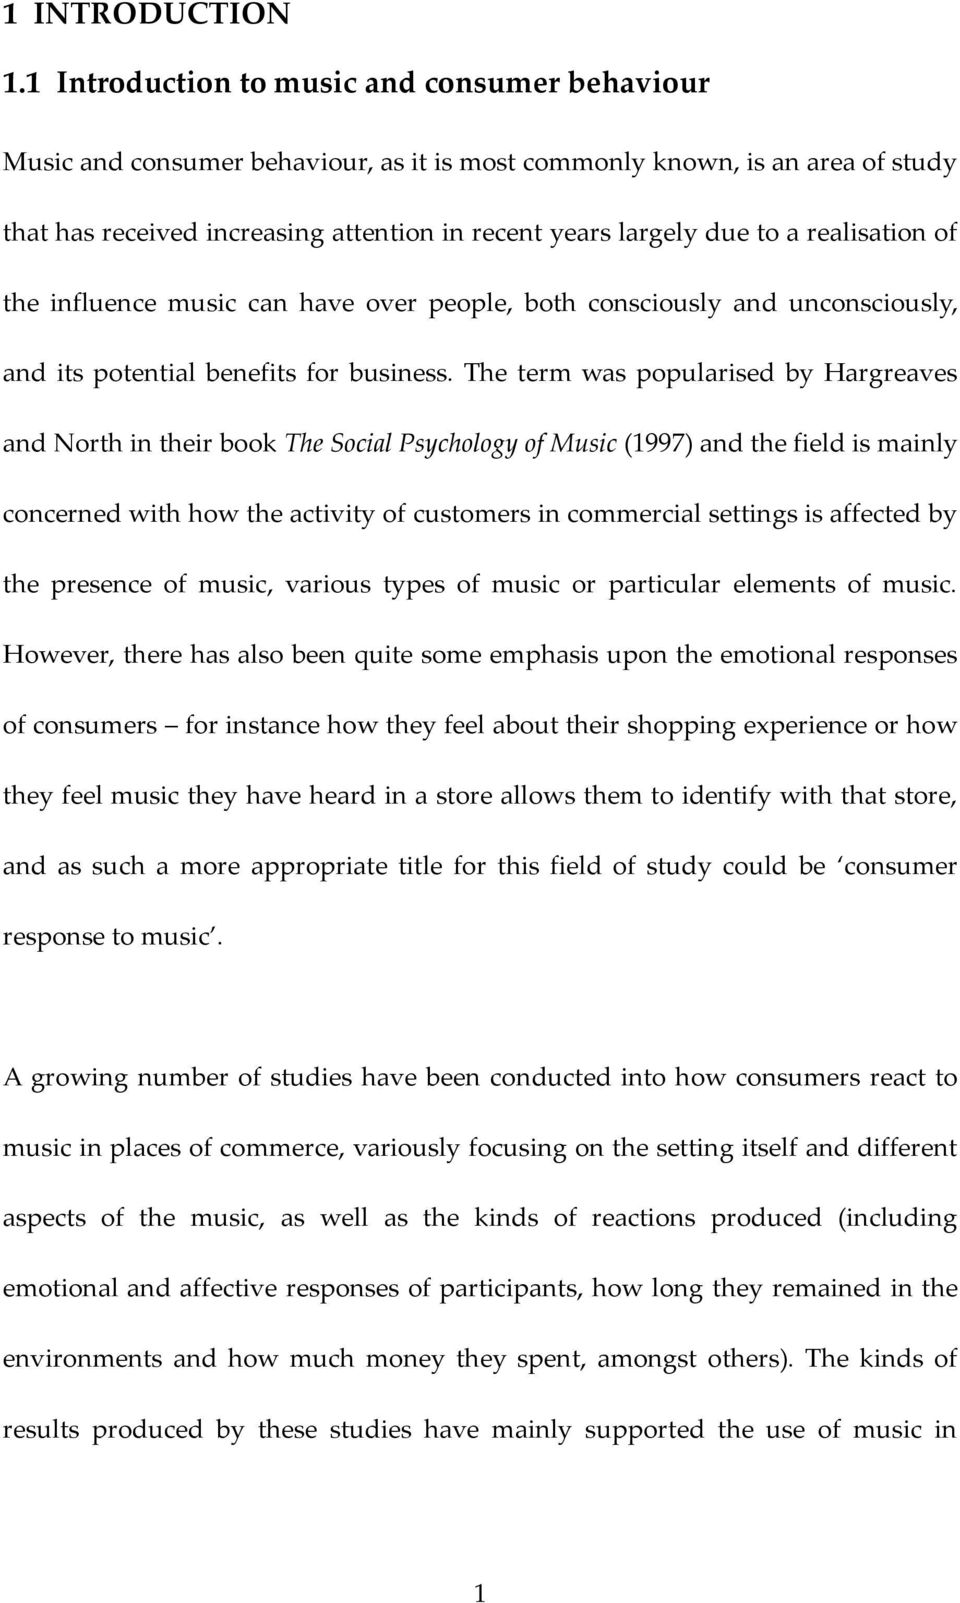 realisation of the influence music can have over people, both consciously and unconsciously, and its potential benefits for business.